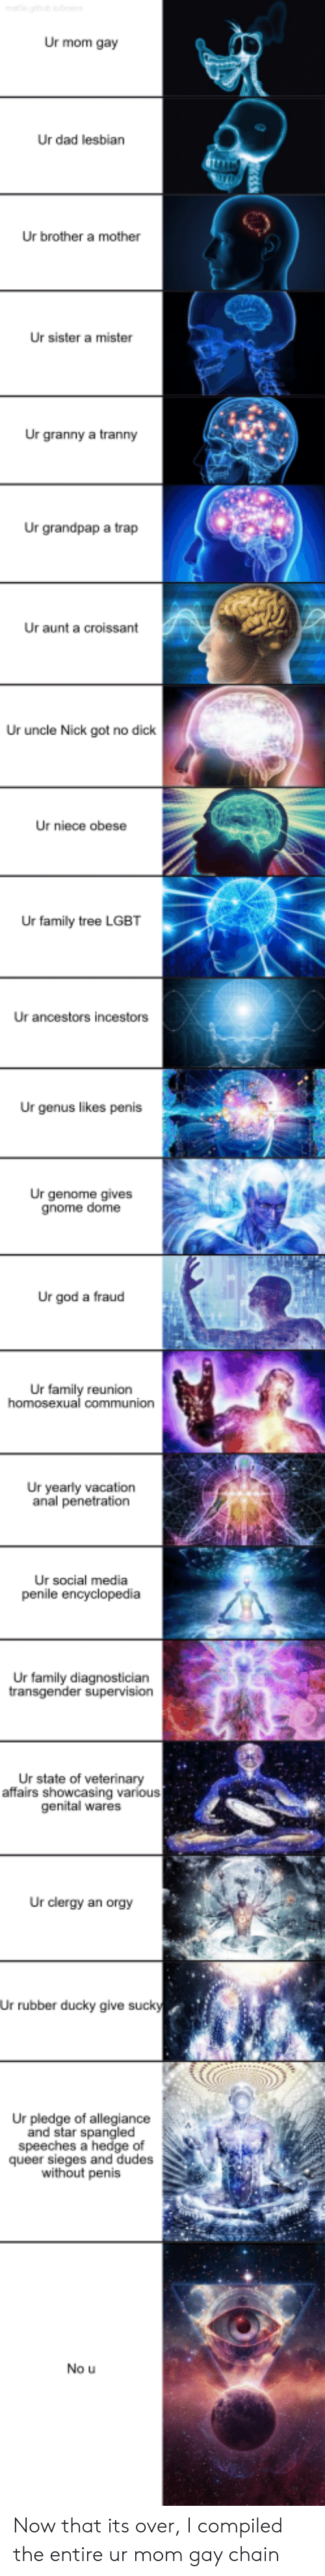 Penetration: Ur mom gay  Ur dad lesbian  Ur brother a mother  Ur sister a mister  Ur granny a tranny  Ur grandpap a trap  Ur aunt a croissant  Ur uncle Nick got no dick  Ur niece obese  Ur family tree LGBT  Ur ancestors incestors  Ur genus likes penis  Ur genome gives  gnome dome  Ur god a fraud  Ur family reunion  Ur yearly vacation  anal penetration  Ur social media  Ur family diagnosticiarn  Ur state of veterinary  affairs showcasing various  genital wares  Ur clergy an orgy  Ur rubber ducky give suck  Ur pledge of allegiance  and star spangle  speeches a hedge of  queer sieges and dudes  without penis  No u Now that its over, I compiled the entire ur mom gay chain